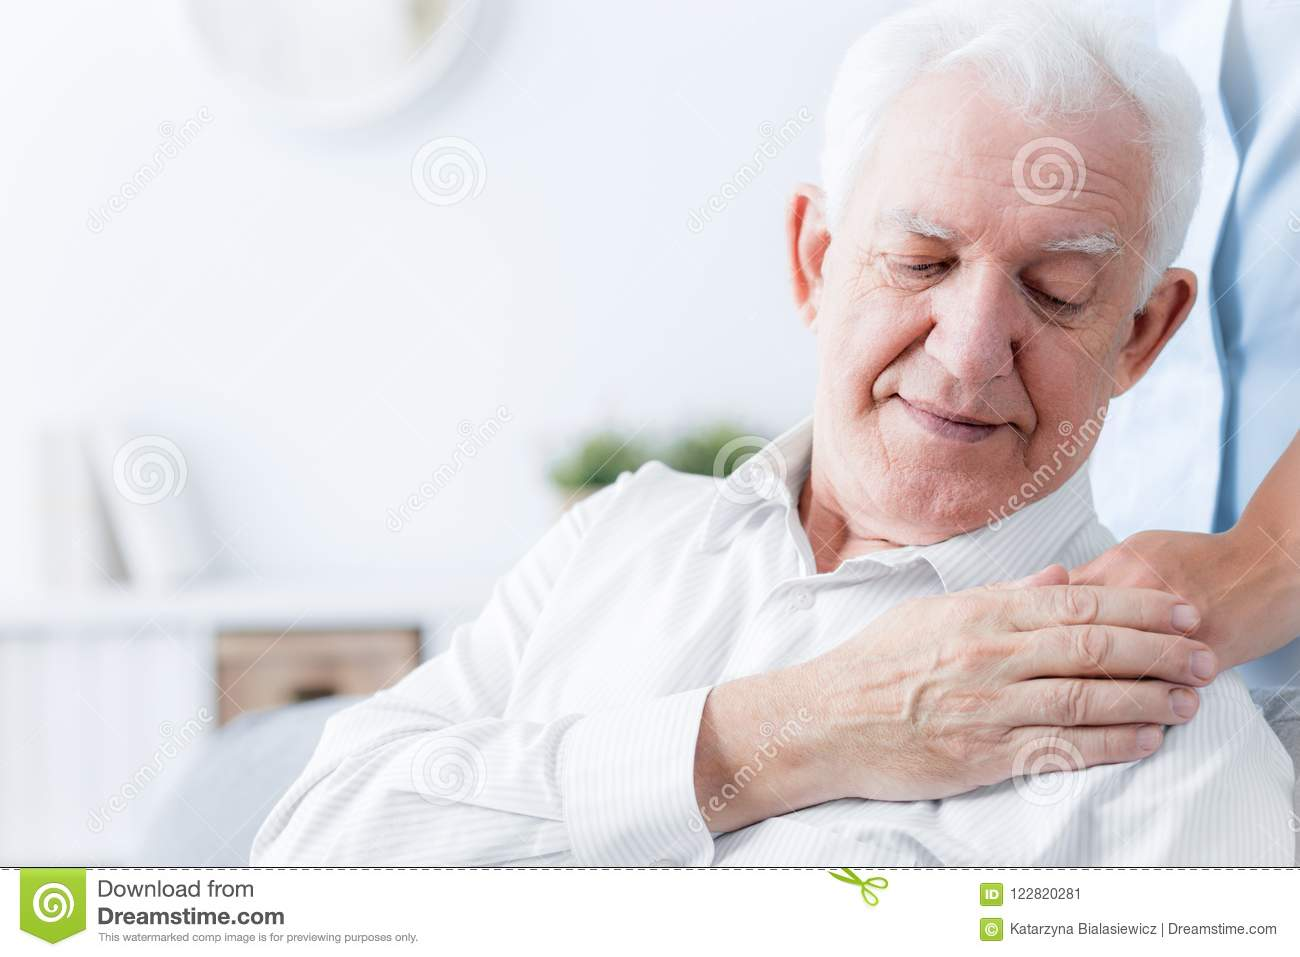 Close-up of senior man touching hand of friendly caregiver